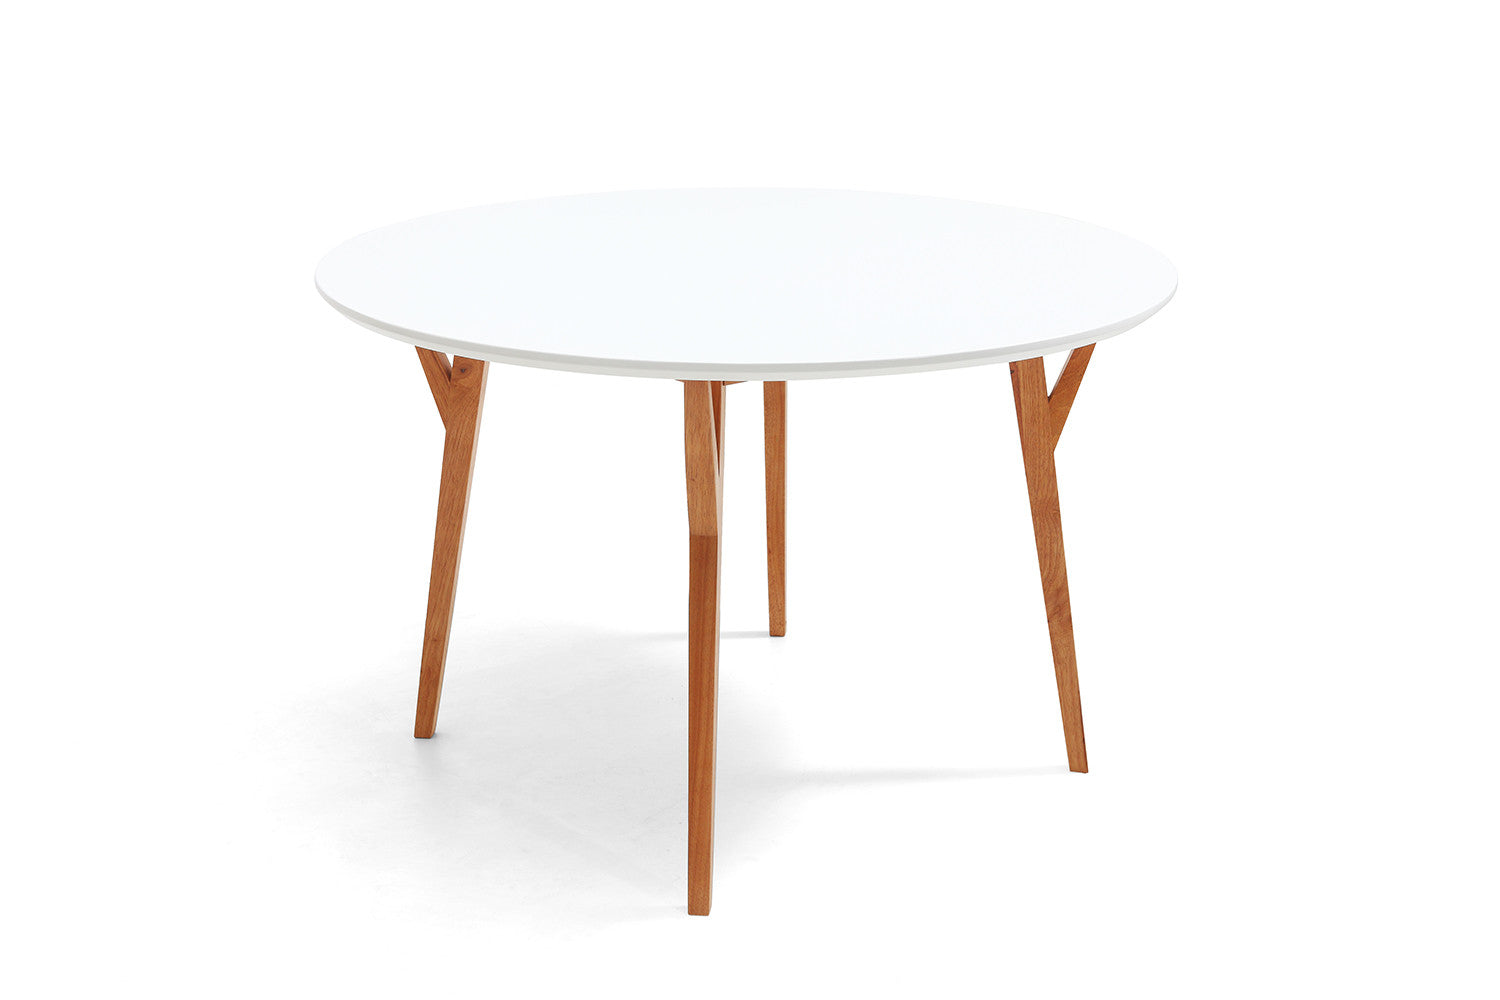 Table de salle manger ronde design scandinave moesa for Table de salle a manger design ronde